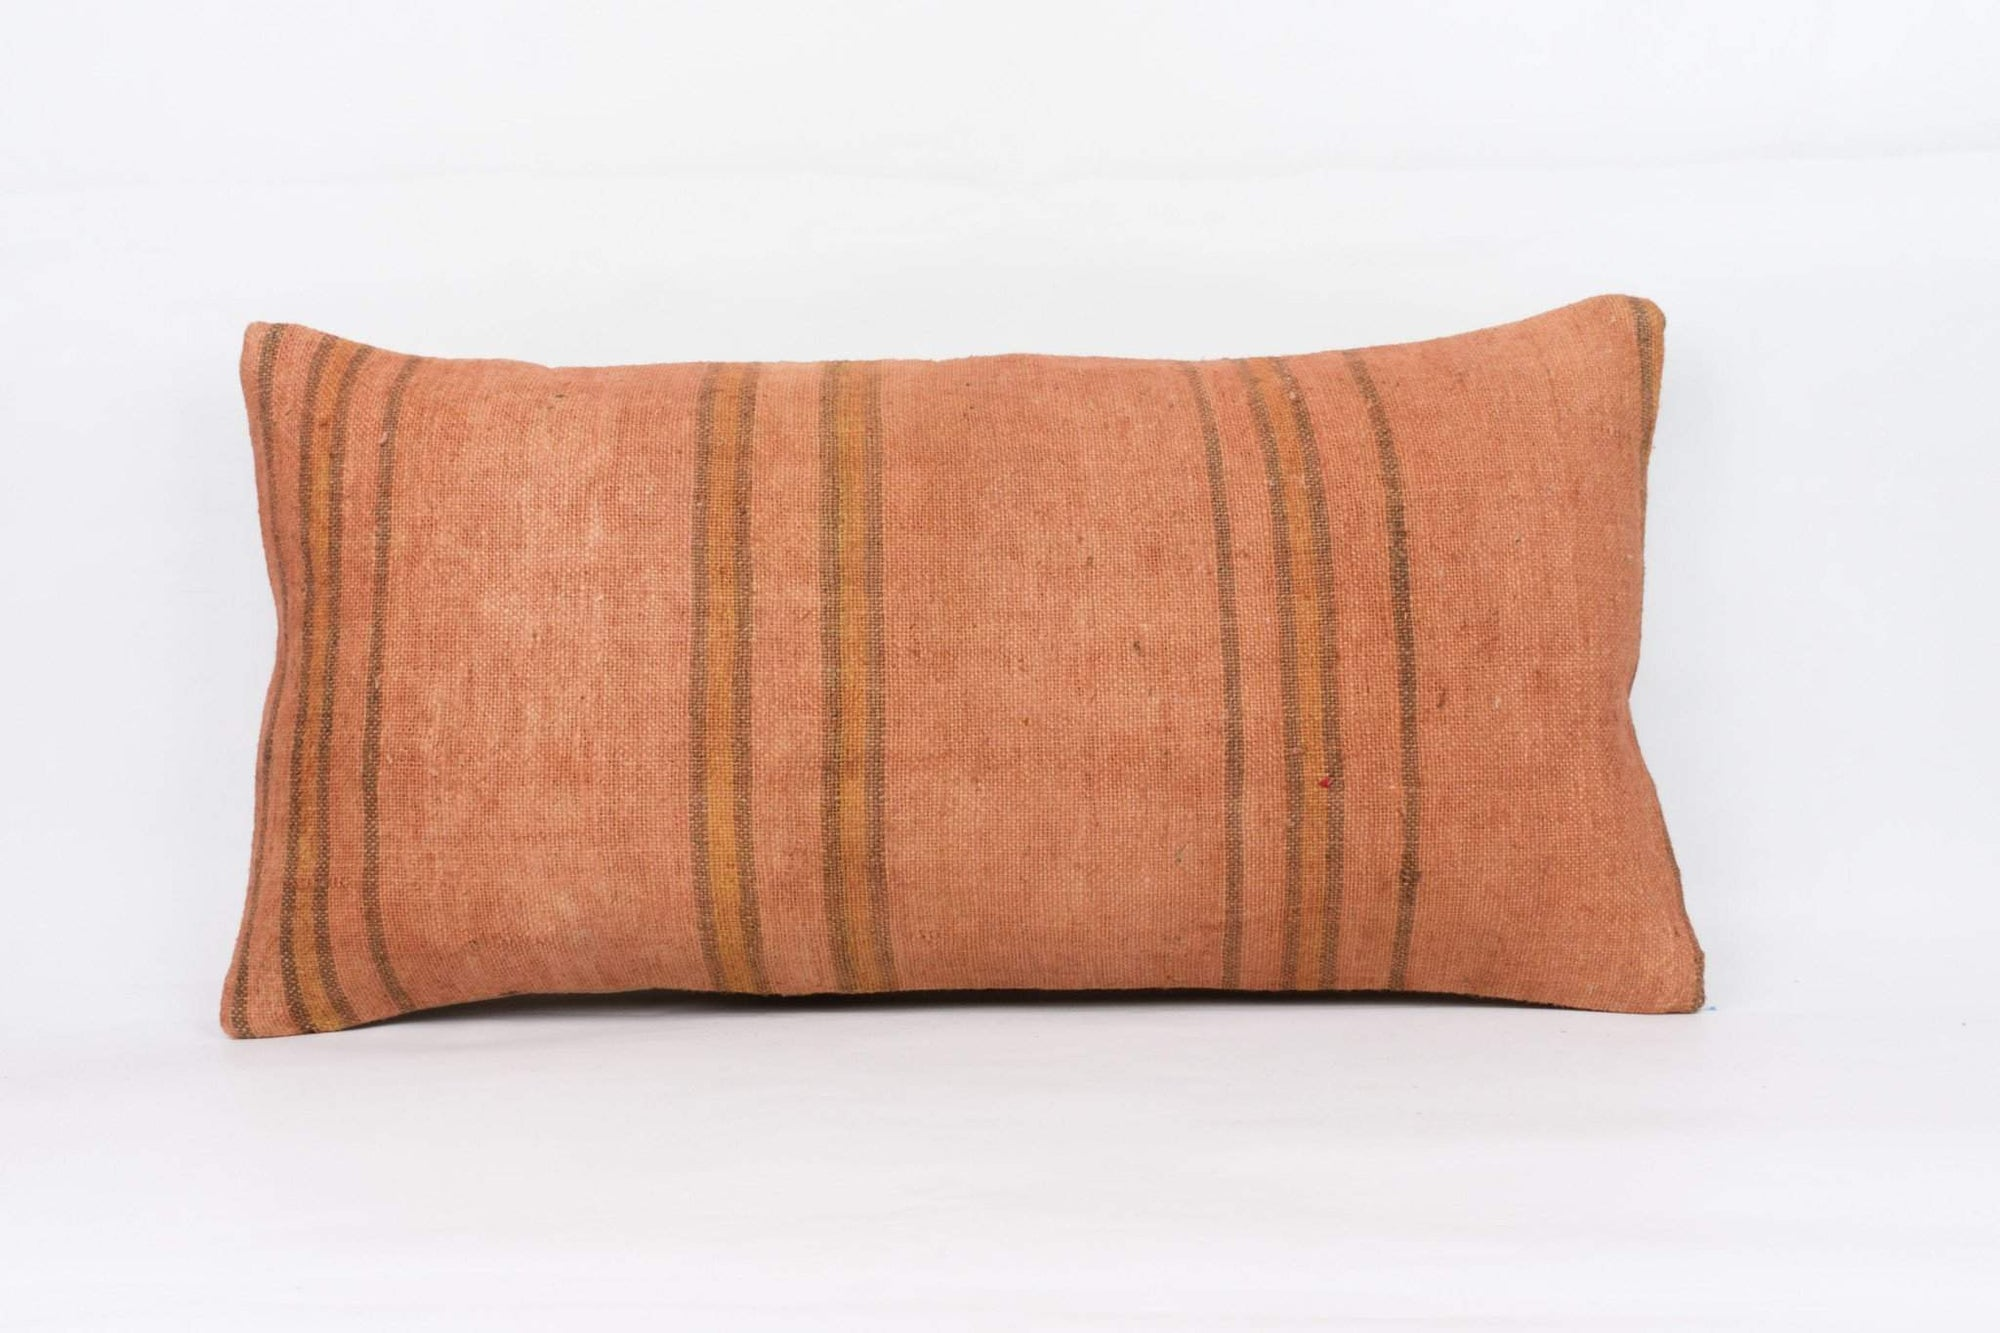 Plain Brown Kilim Pillow Cover 12x24 4199 - kilimpillowstore  - 1